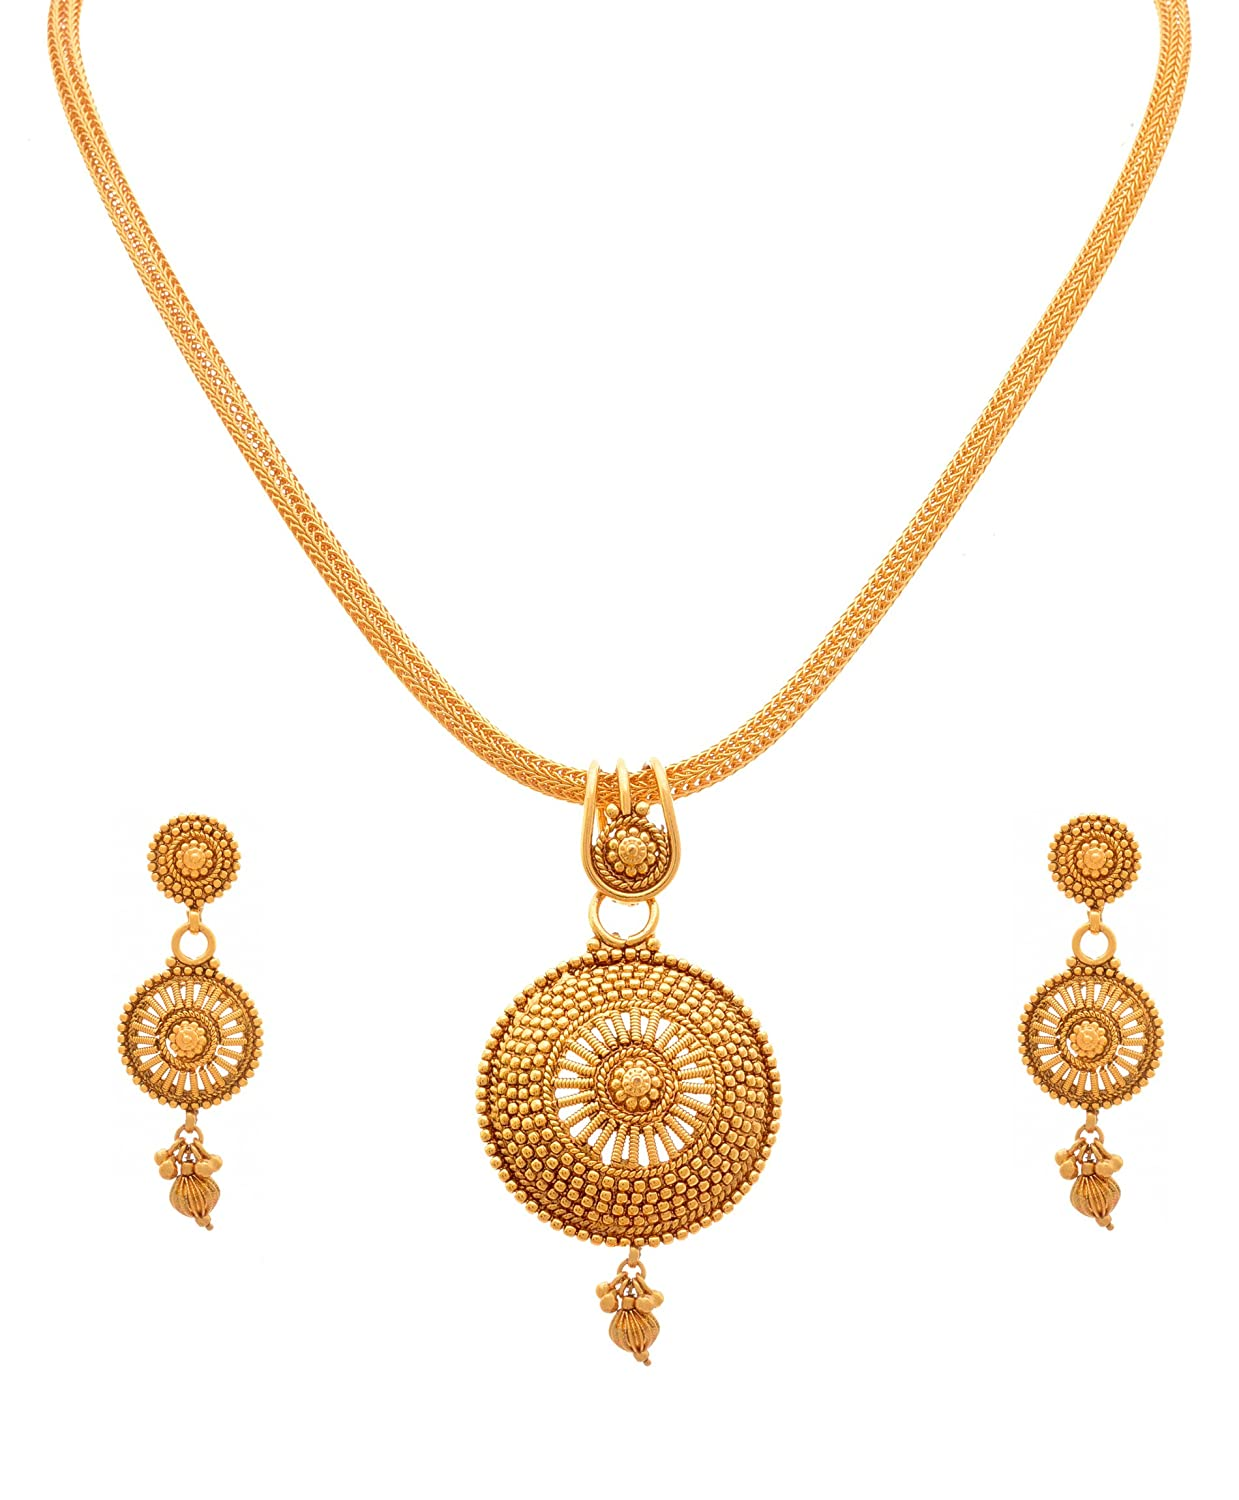 Gold Pendant With Earrings Designs - Best Earring 2017